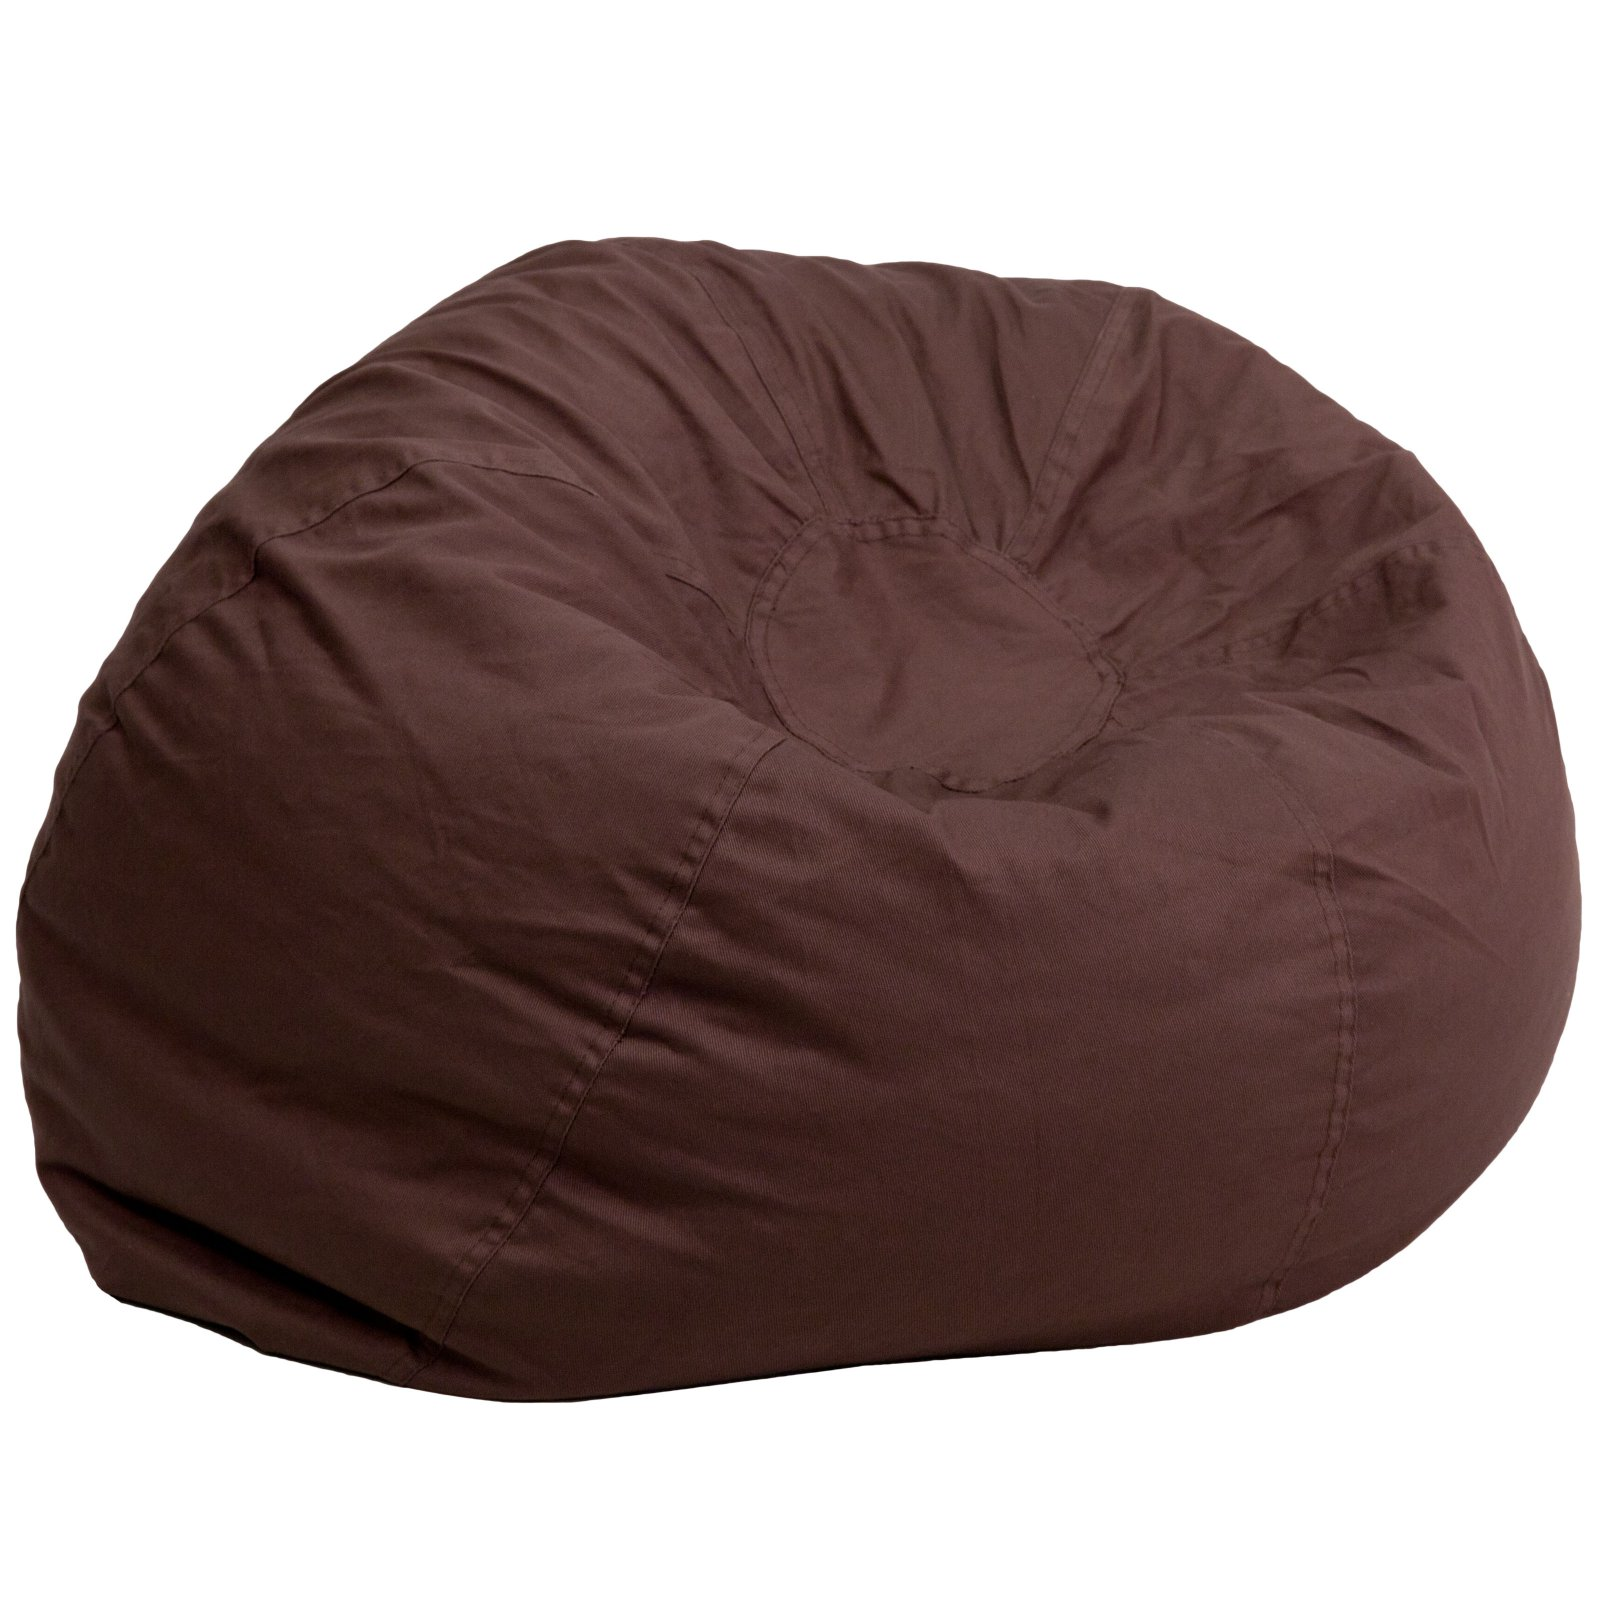 Flash Furniture Oversized Kids Bean Bag Chair, Multiple Colors